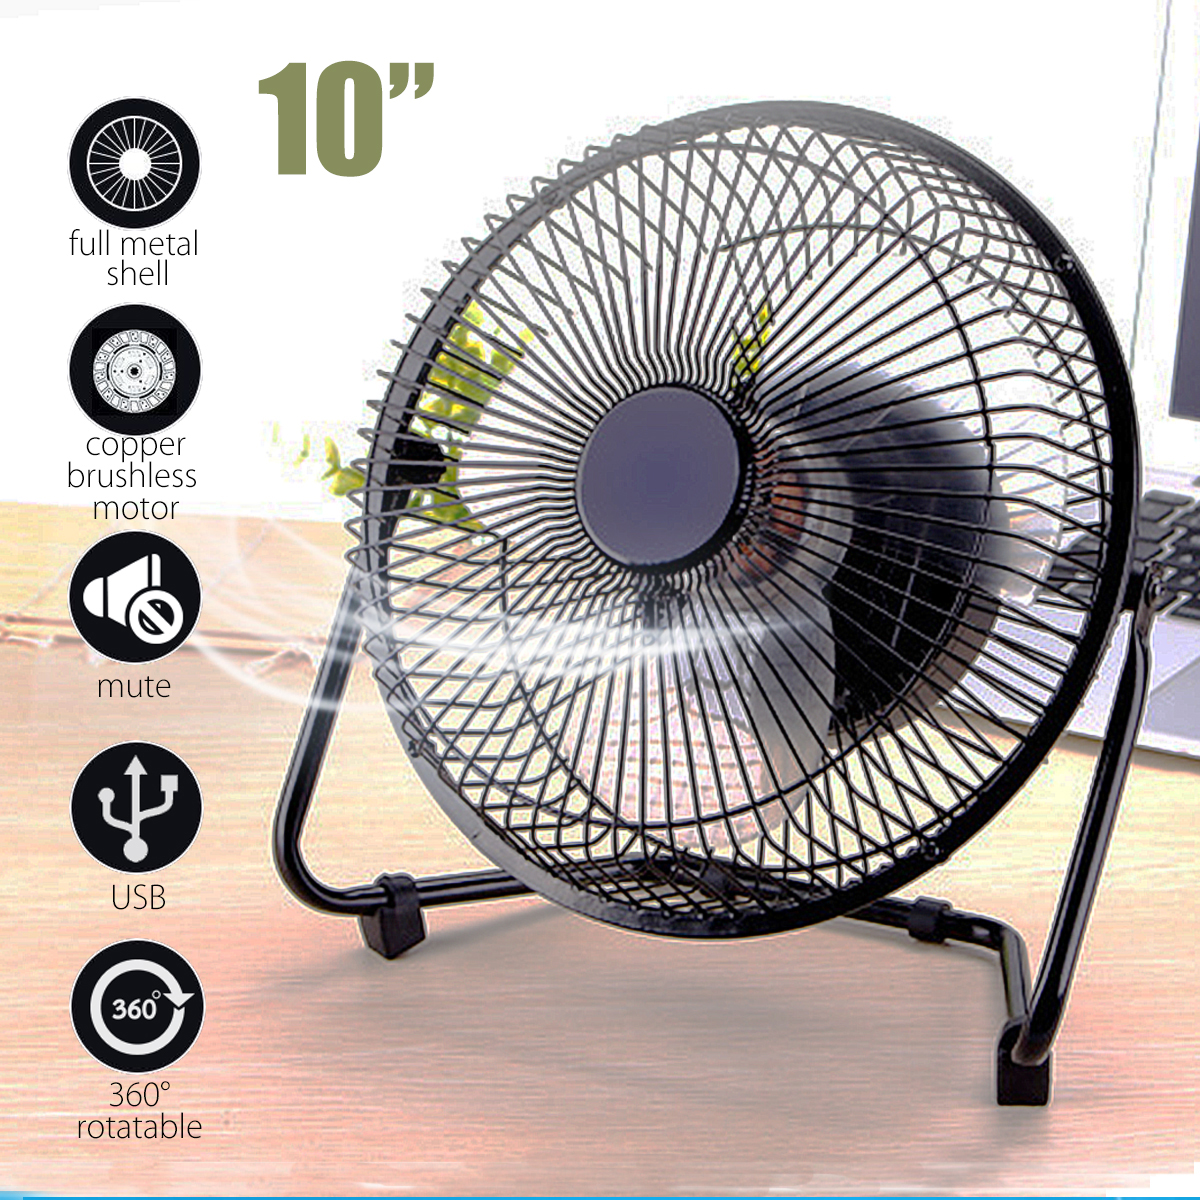 6/8/10inch New USB Gadgets Mini USB Fan For Laptop/PC Metal Electrical 360 Rotatable USB Fan Cooler Rechargeable Battery Desk цена